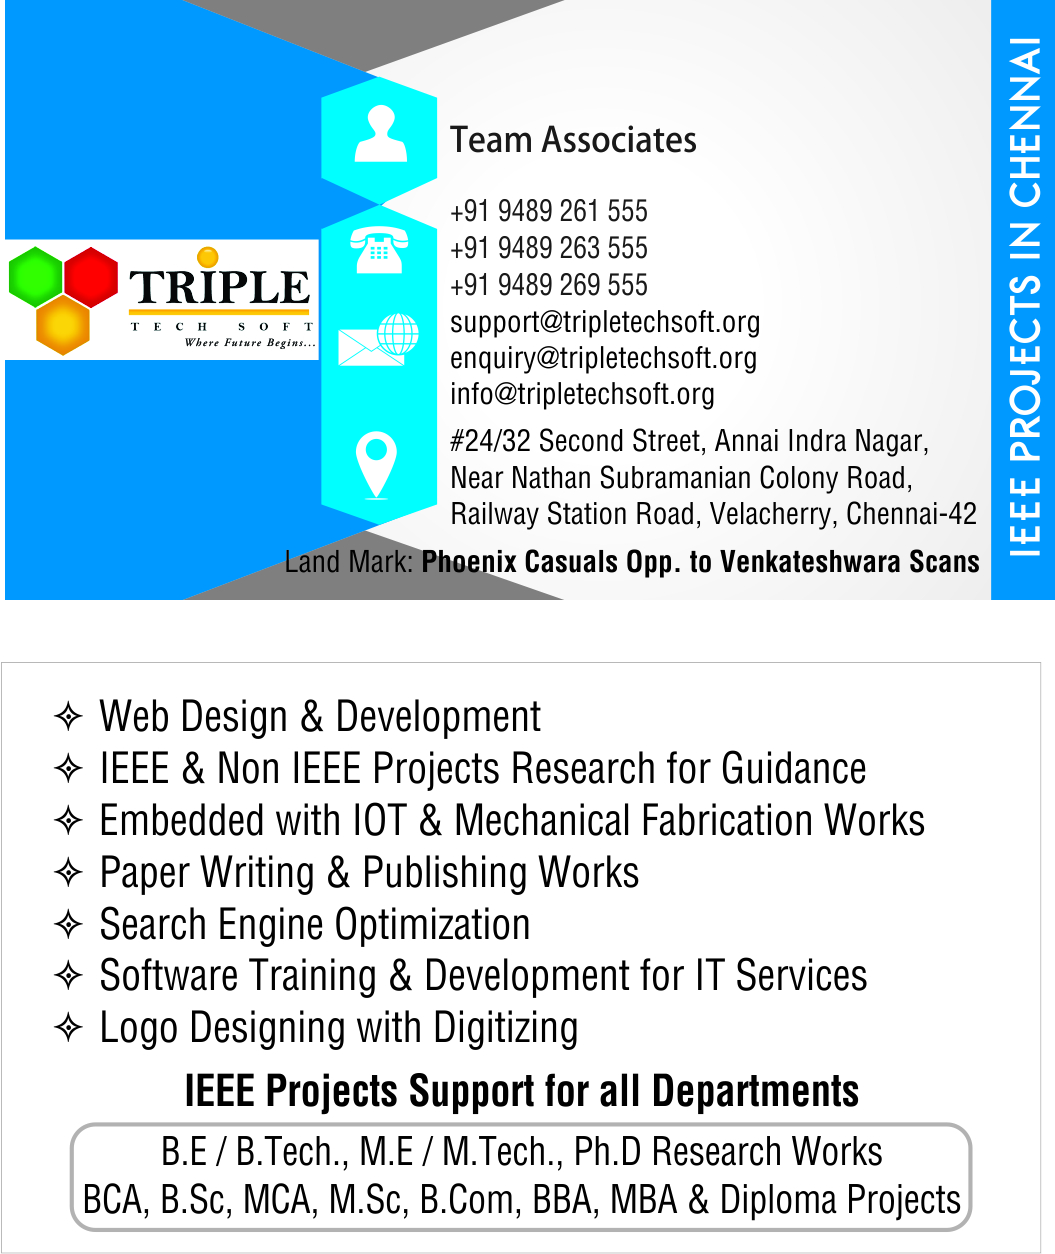 Ieee Project Centers Velachery Final Year Project Center In Velachery Tripletechsoft